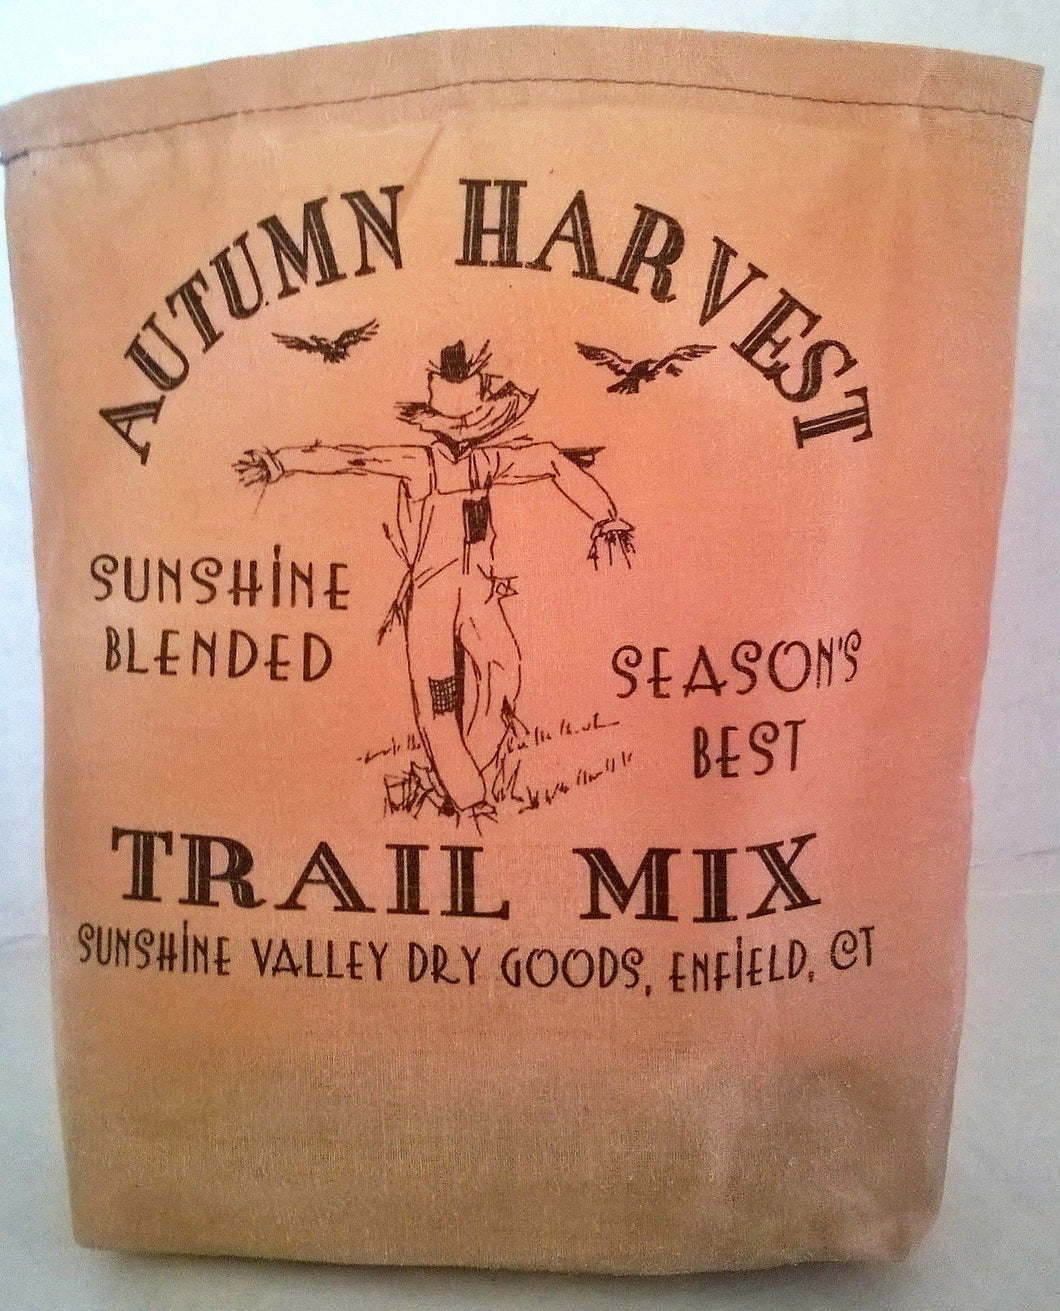 000 - Autumn Harvest Trail Mix Fabric Feed Sack Luminary Bag with Country, Primitive, Vintage Image. Battery Operated Flickering Candle and Candle Holder Included.